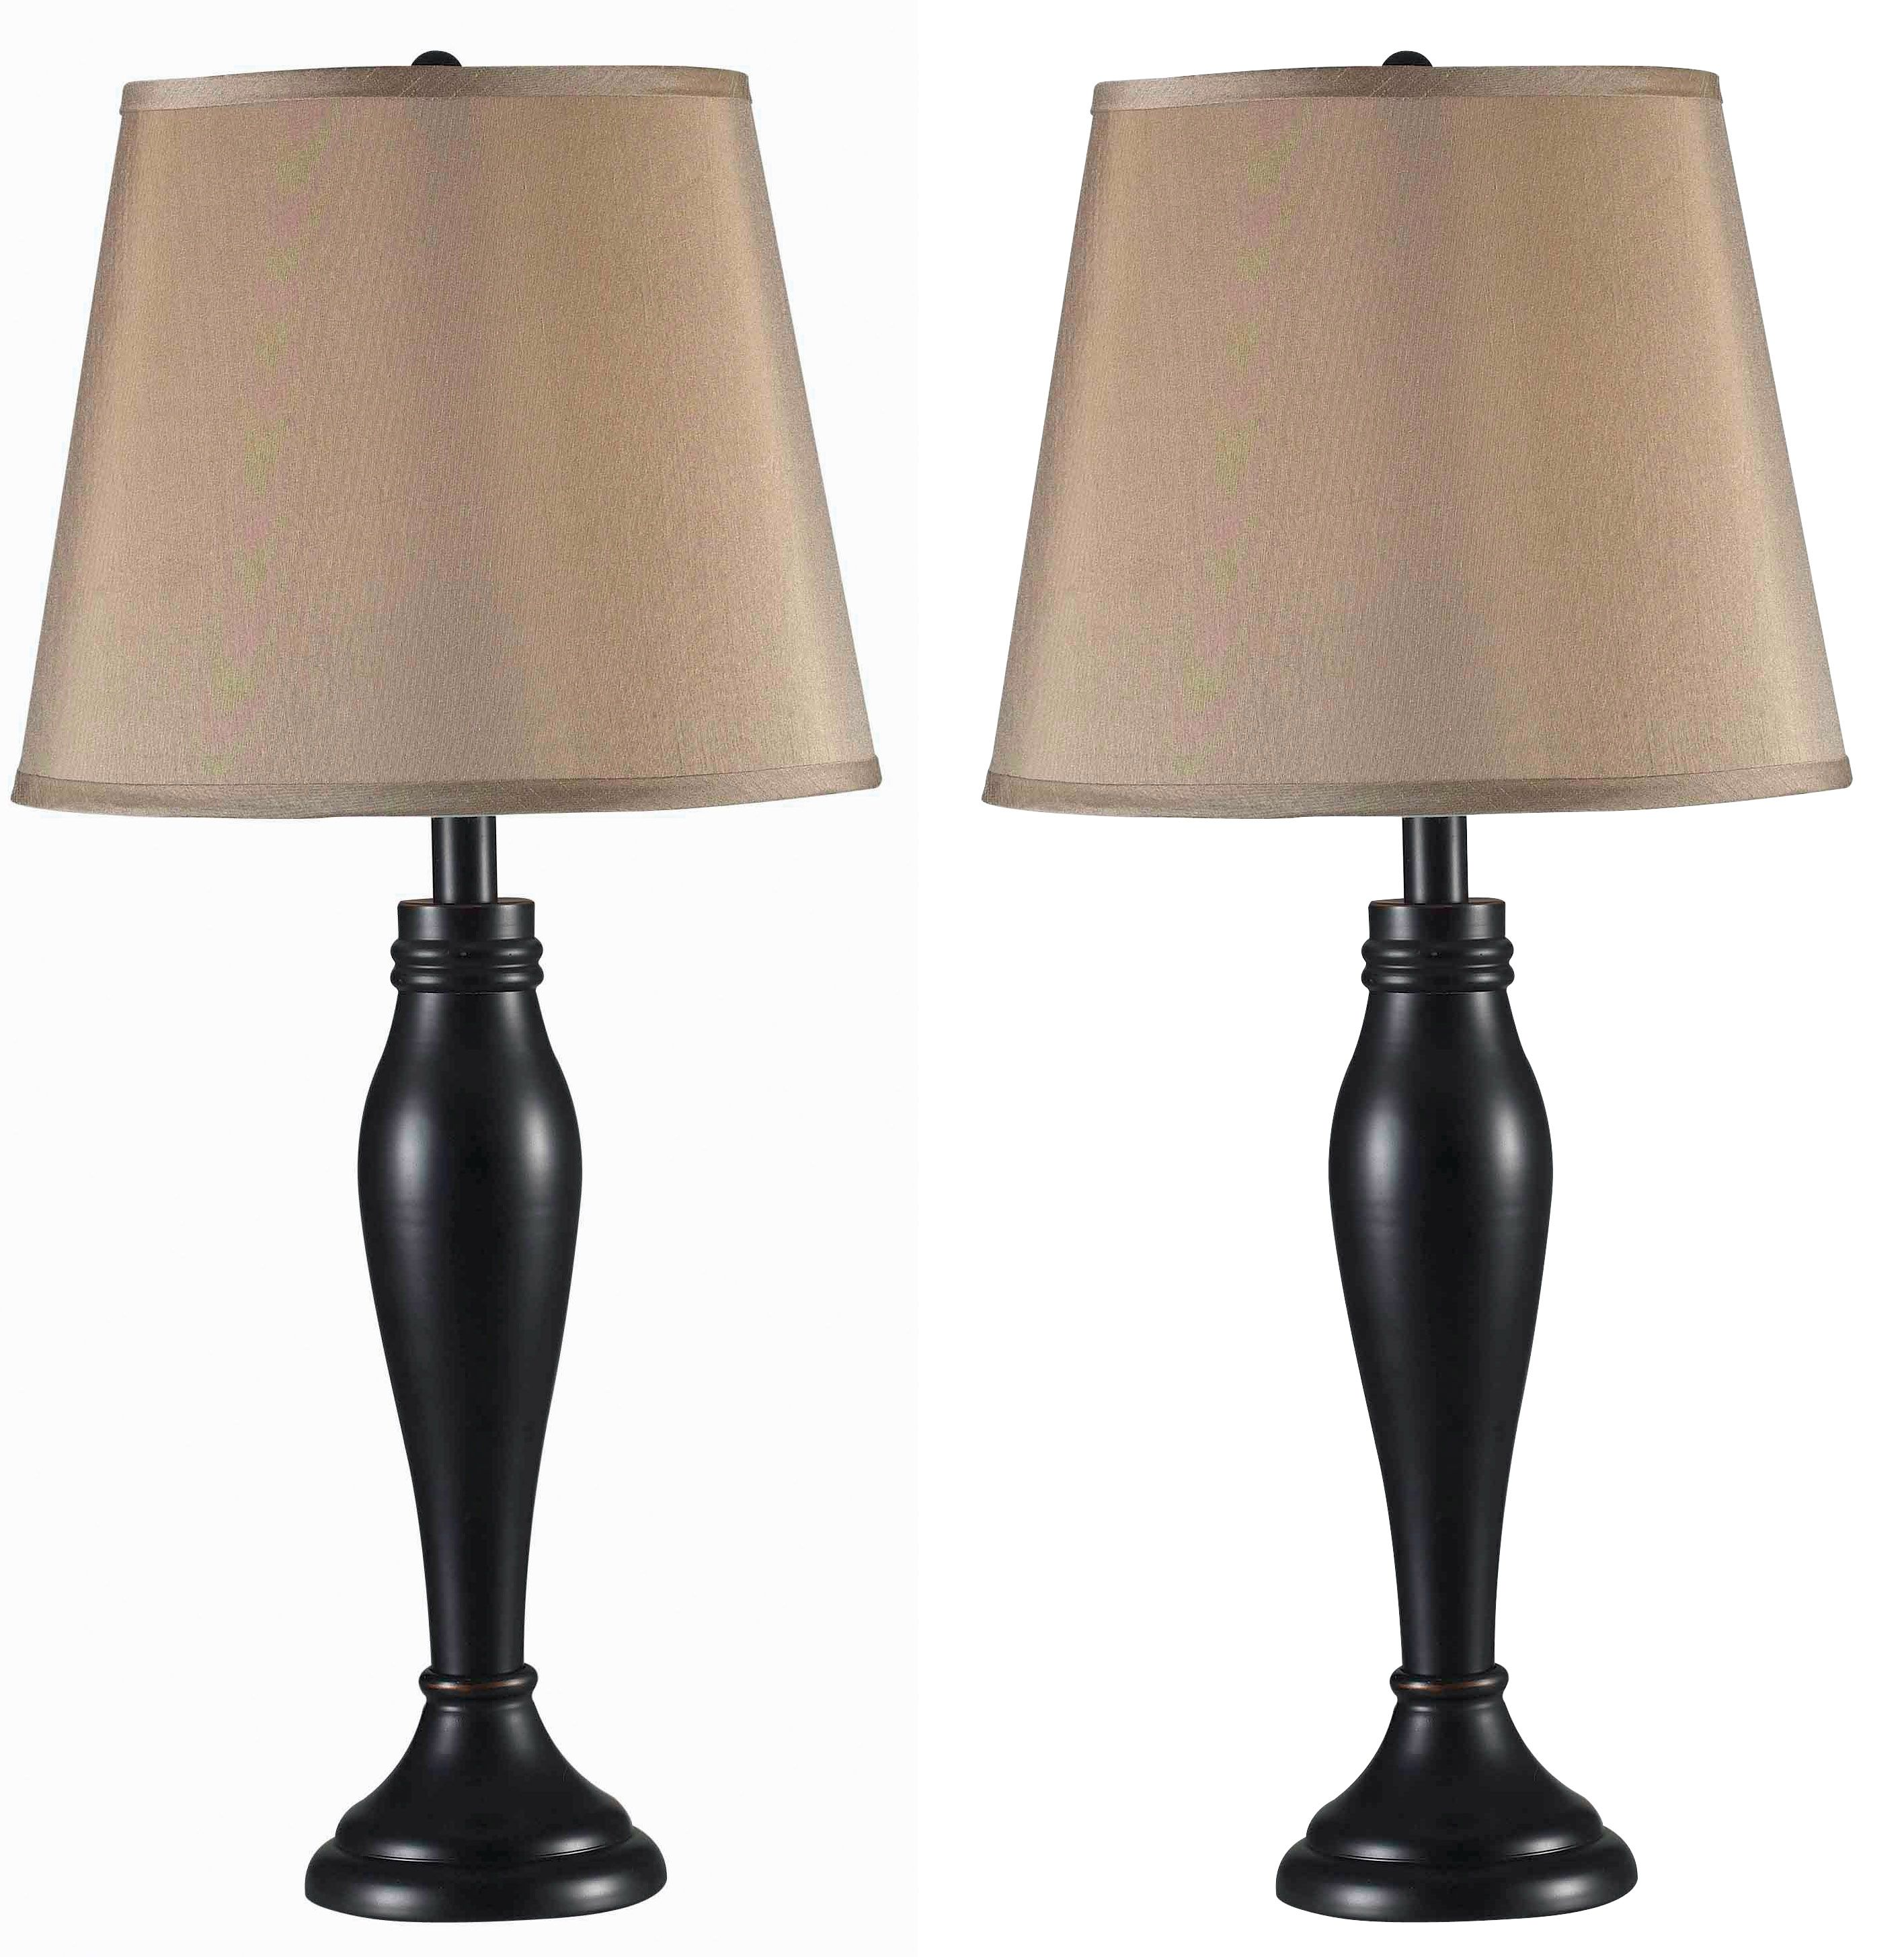 Roxbury 2 Pack Table Lamp The Classic Turned Profile Combines With A Sleek Light Gold Tapered Shade For A Look T Bronze Table Lamp Table Lamp Sets Table Lamp